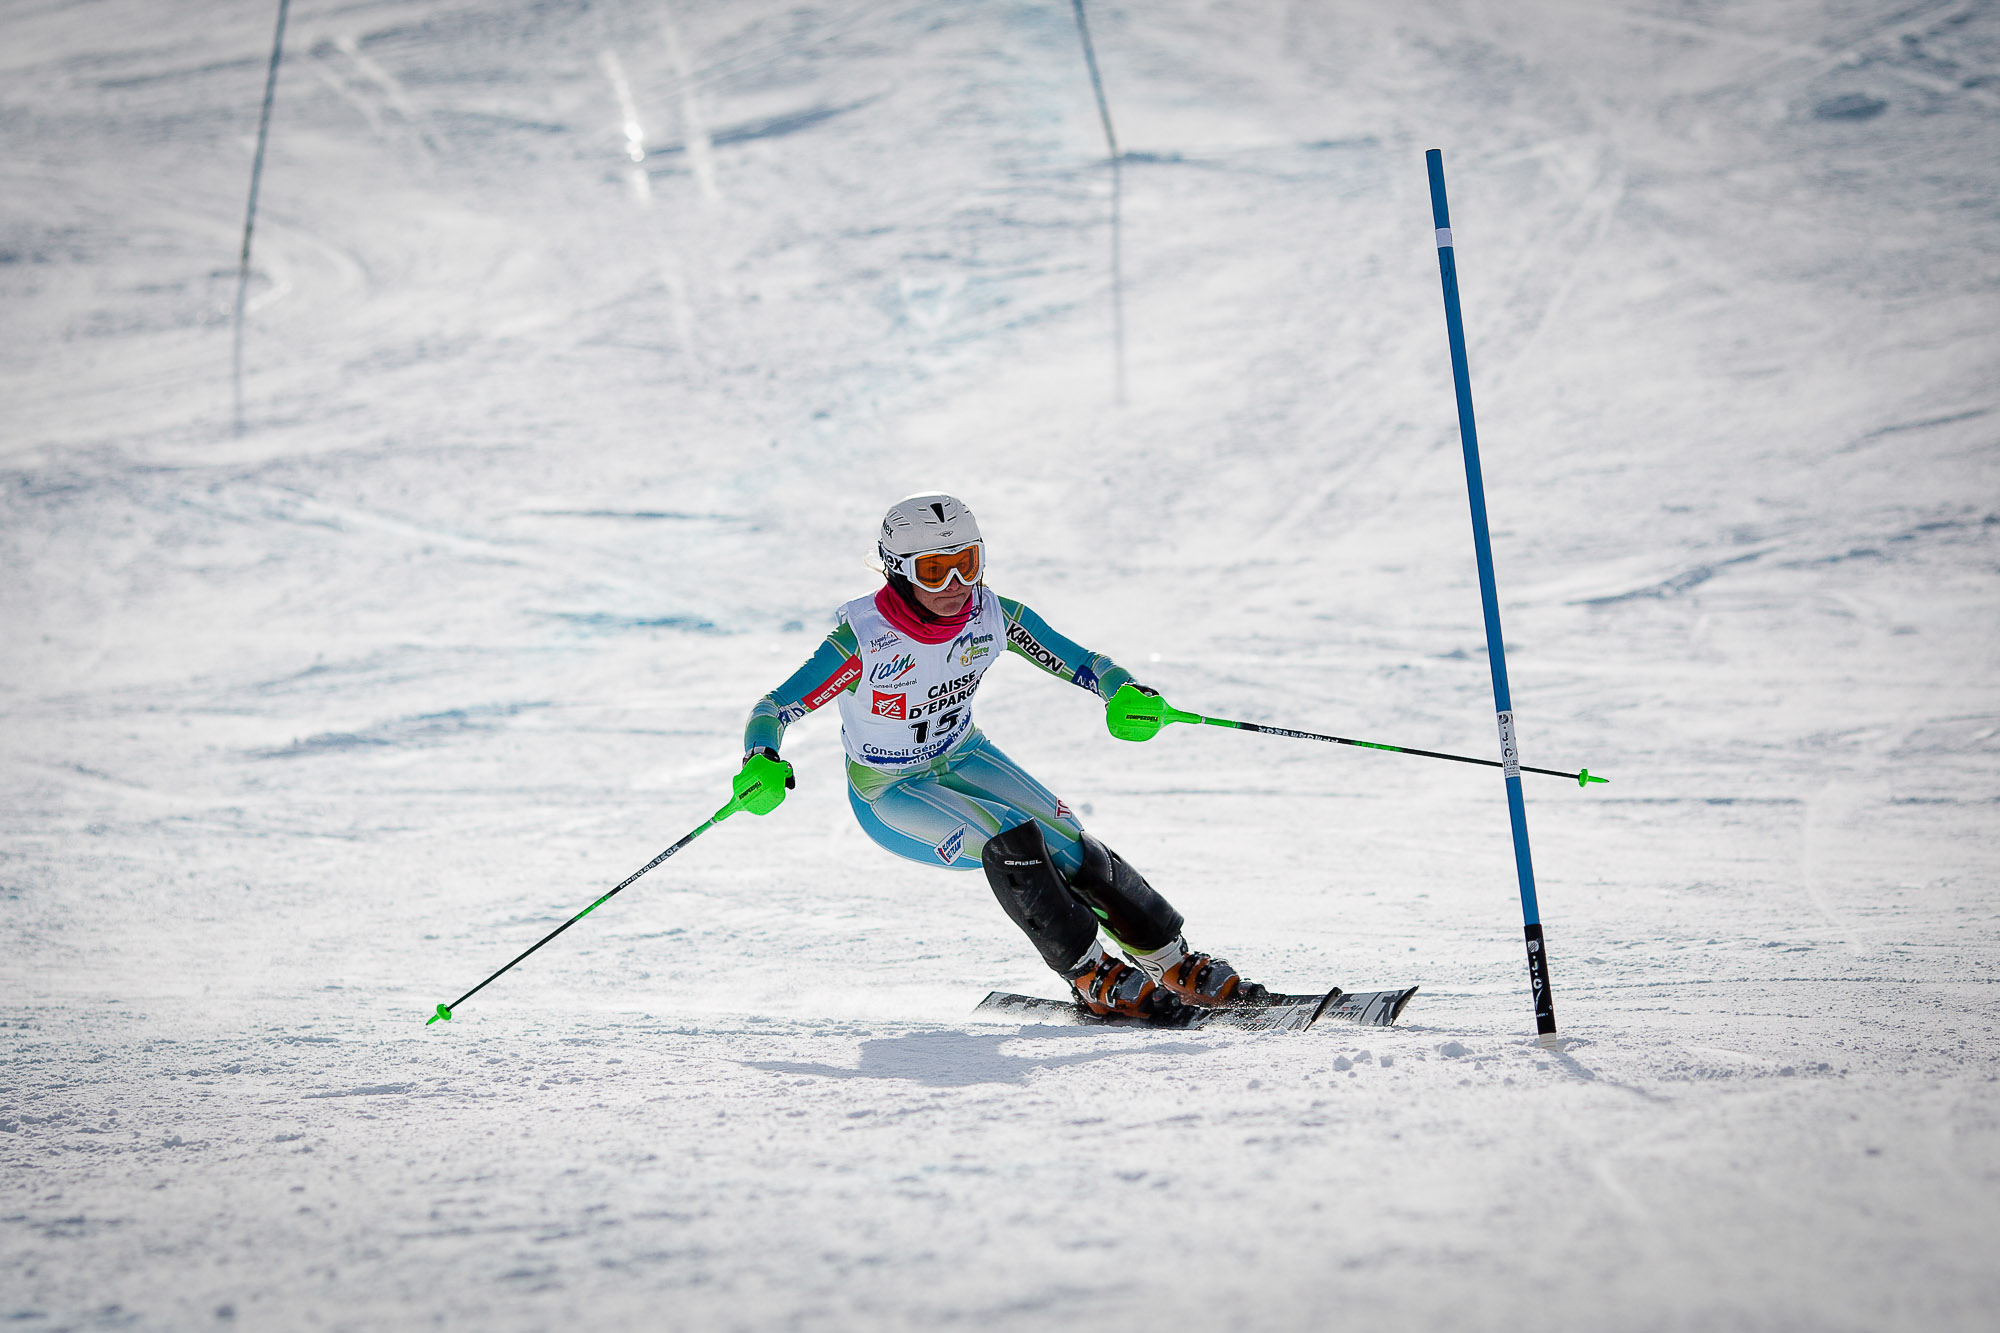 Coupe_Europe_ski_dames-371.jpg